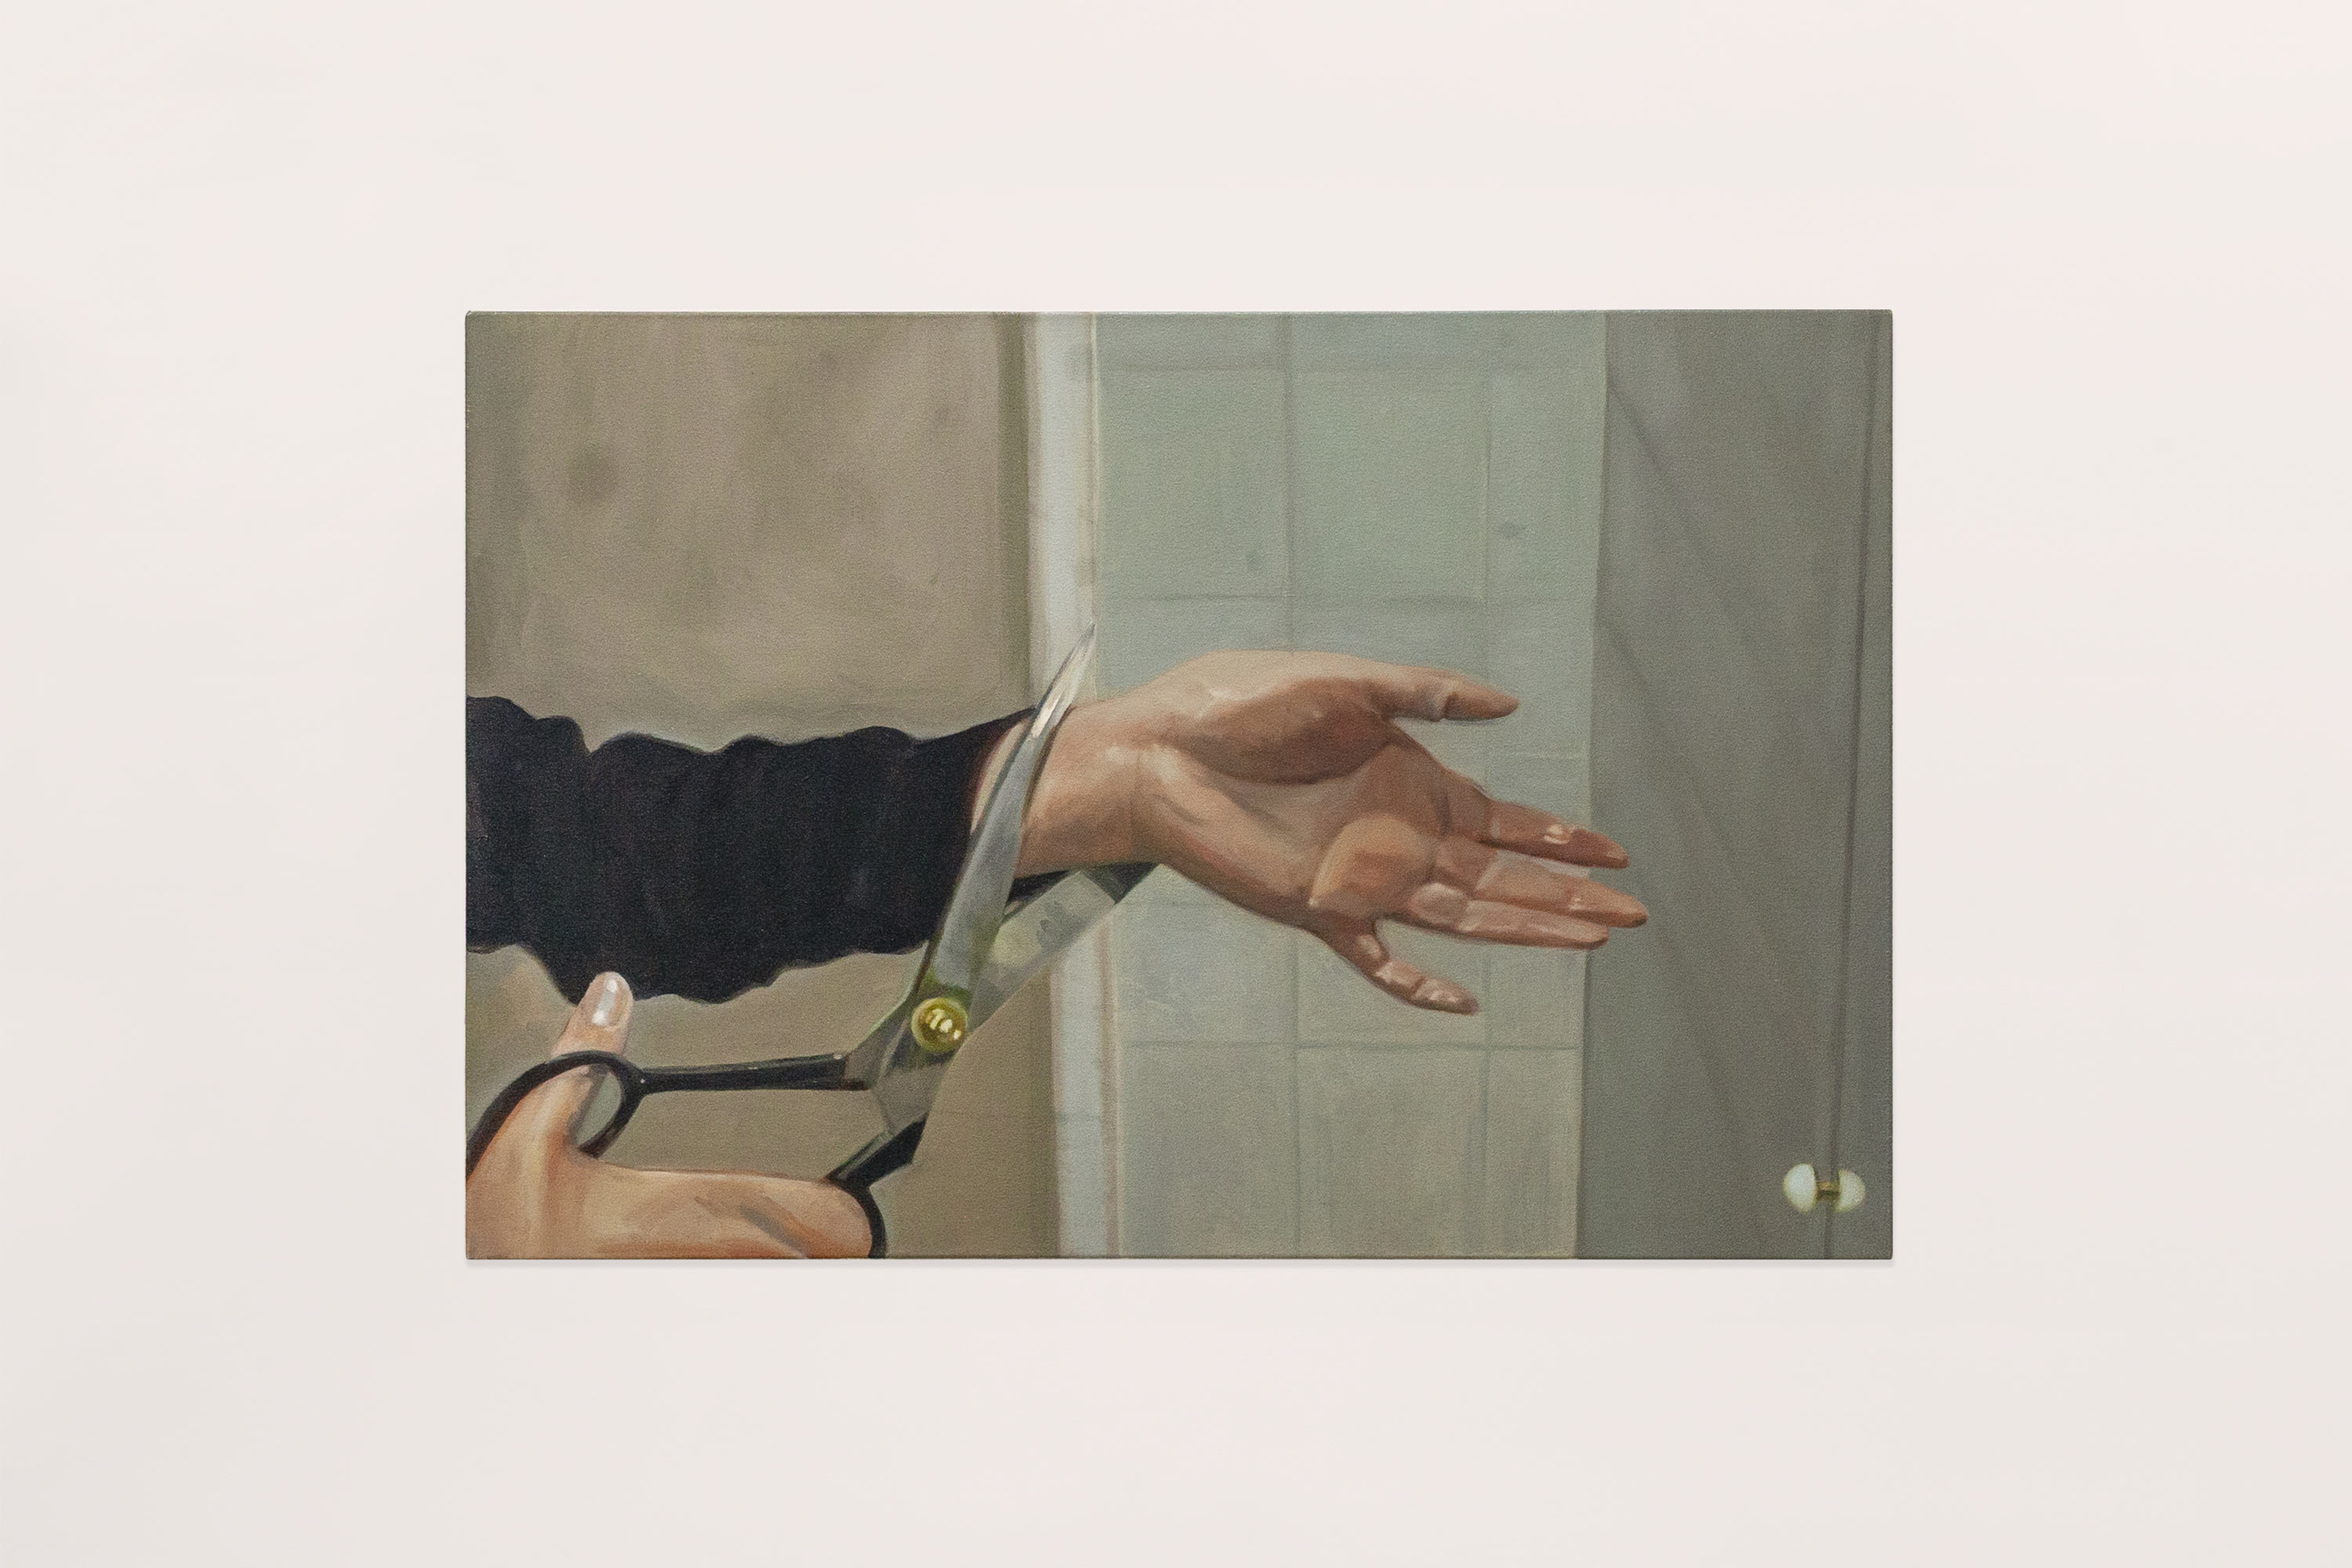 <p>If My Hand Offends</p>